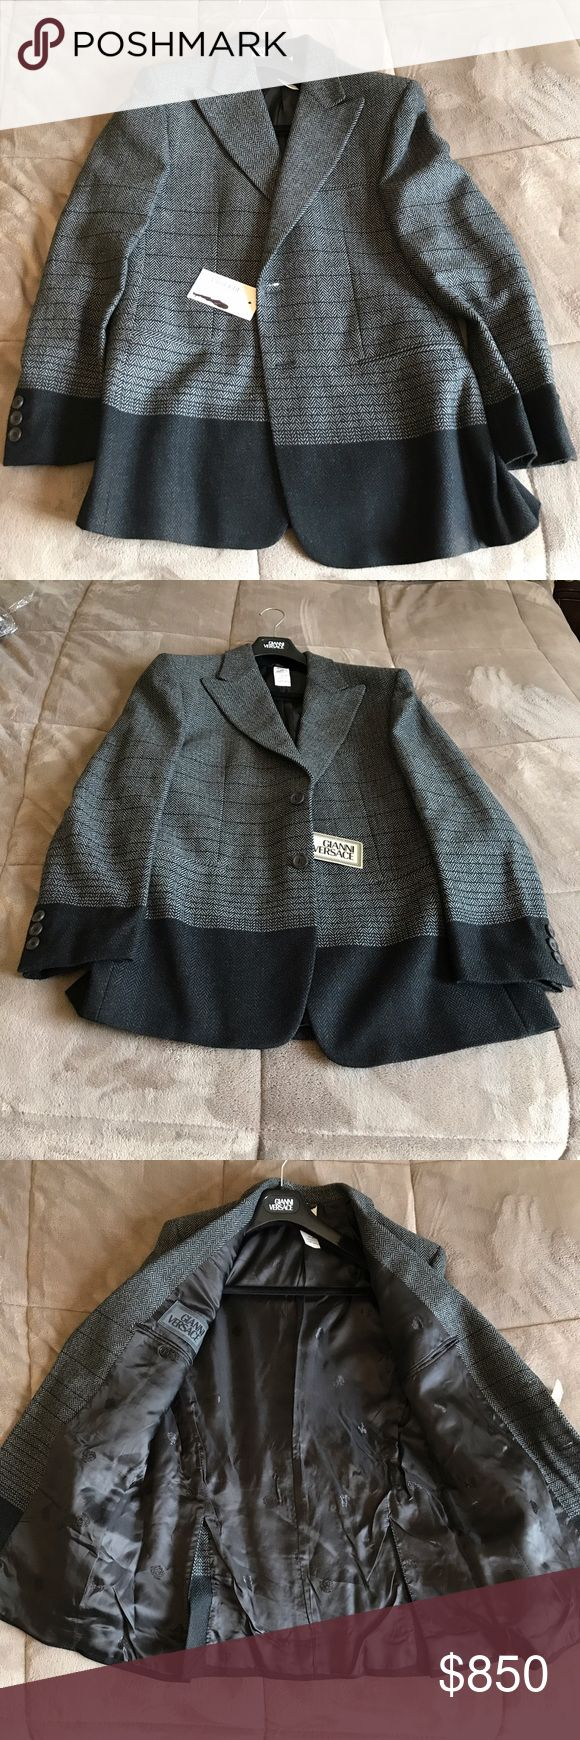 Gianni Versace Men's Wool Blazer NWT Brand new never worn. Can be worn with dress slacks or jeans perfect business or on the go. Versace Size 48 Versace Suits & Blazers Sport Coats & Blazers